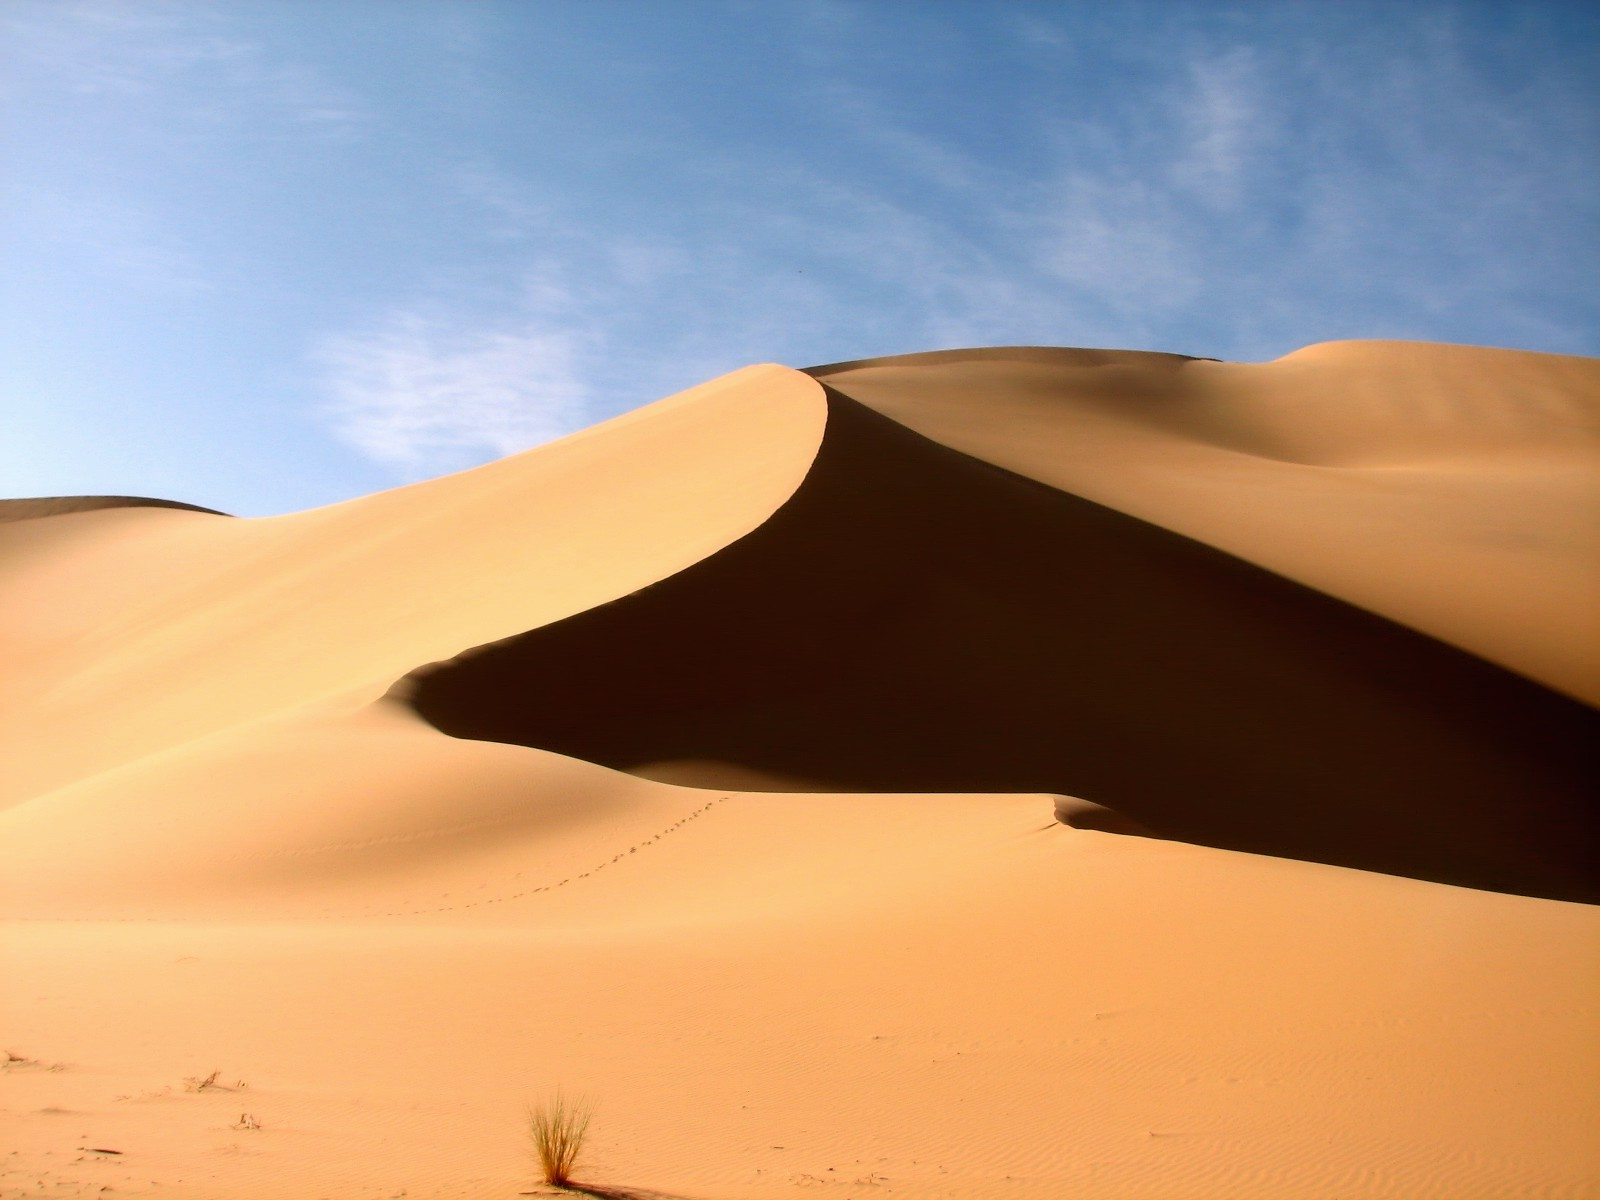 wallpaper-paysage-dune-sable-nature.jpg